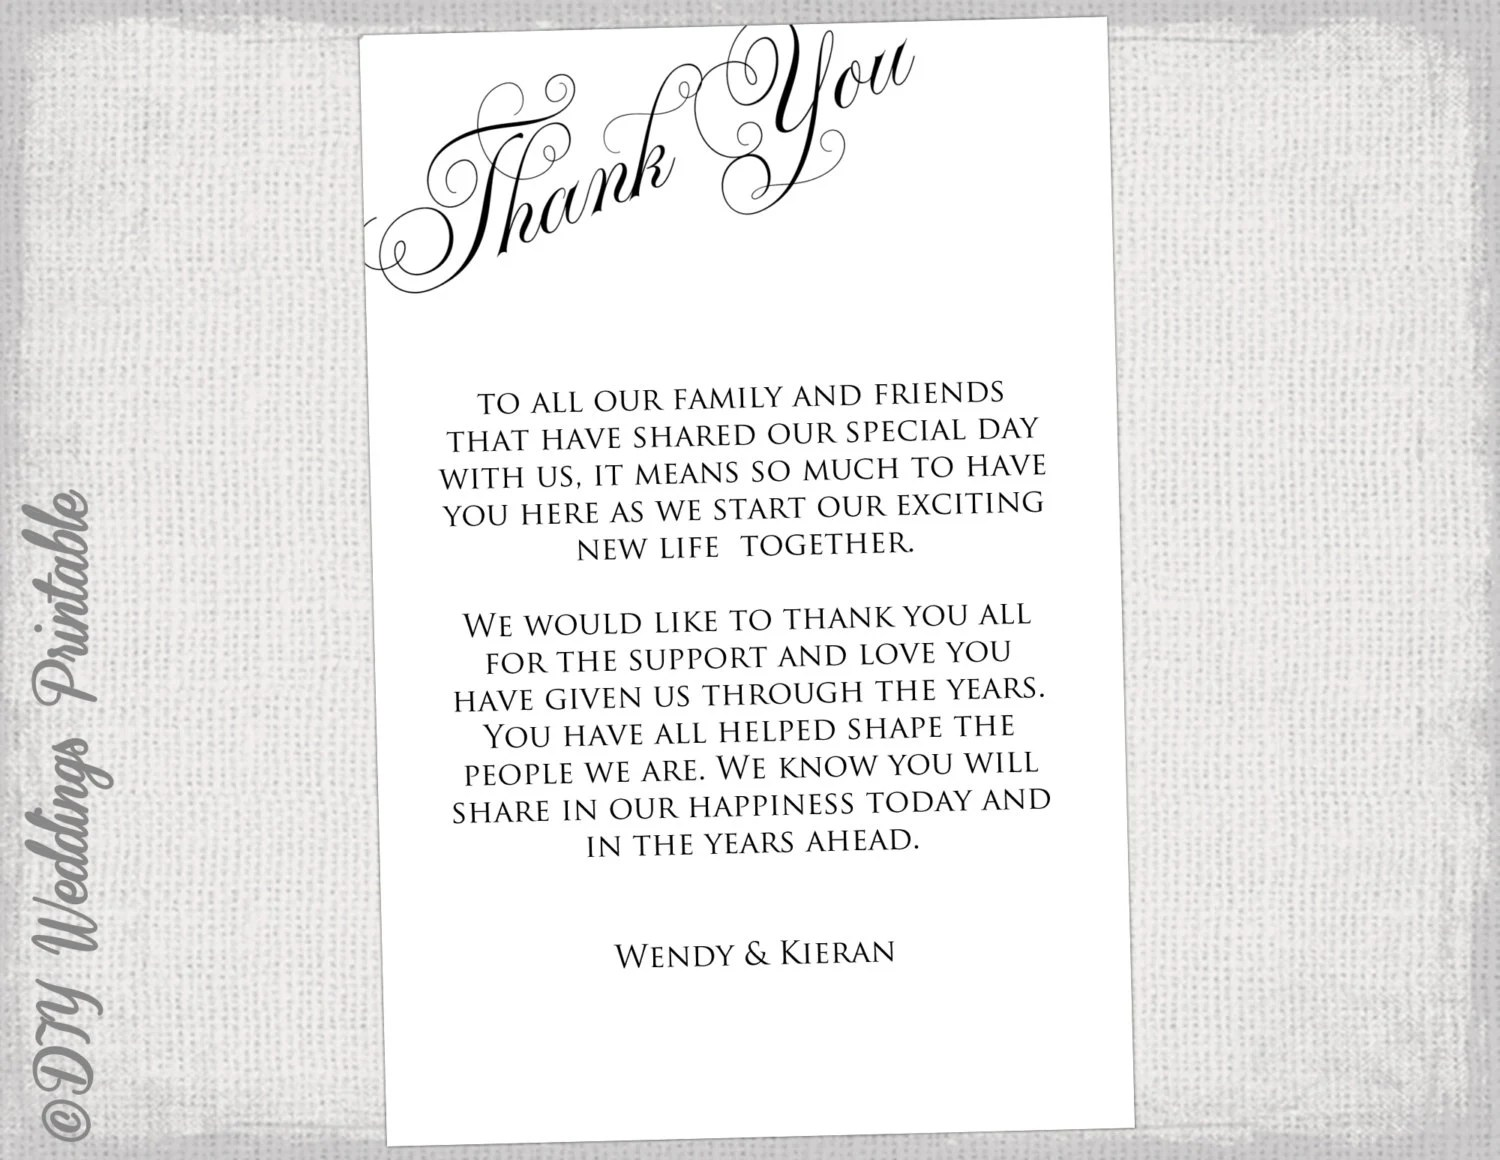 Thank you card template resume templates word images for thank you card template maxwellsz